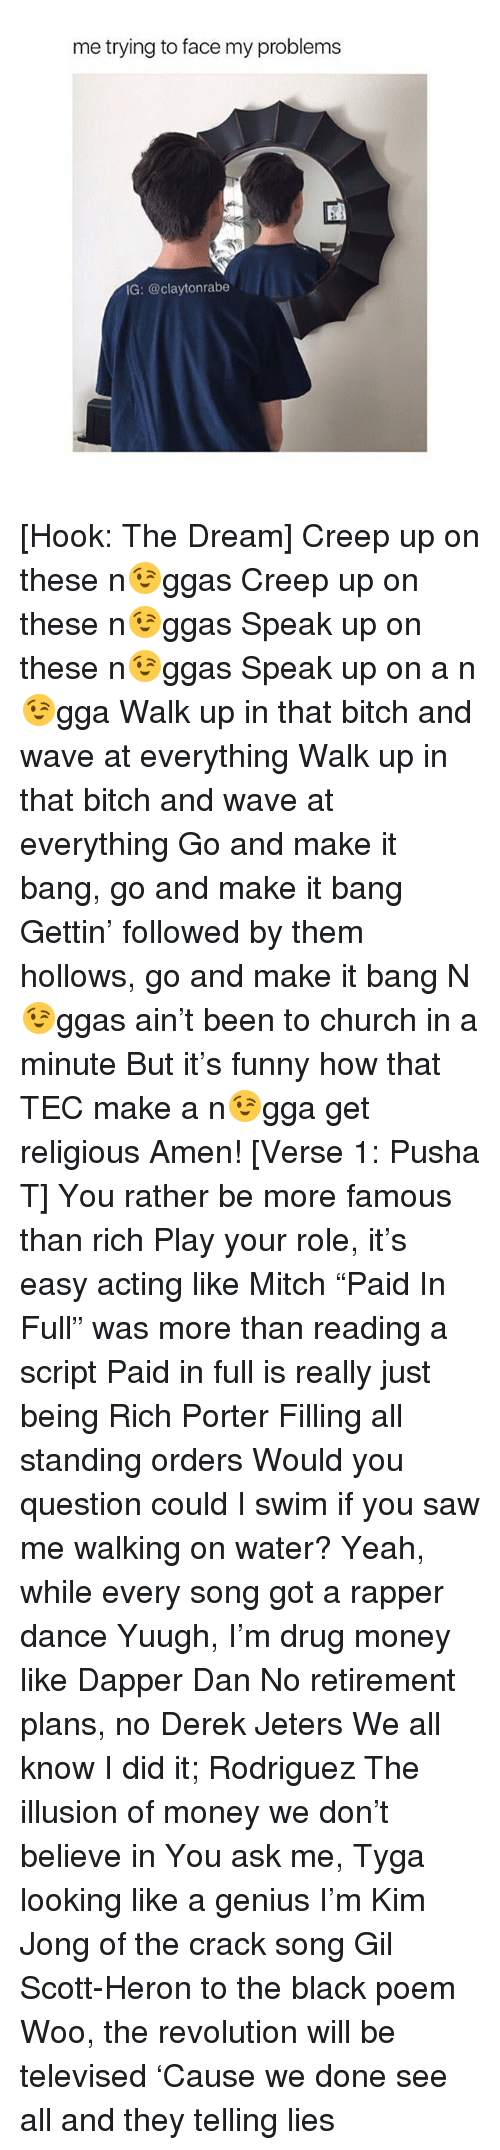 """Being Rich, Bitch, and Church: me trying to face my problems  IG: @claytonrabe [Hook: The Dream] Creep up on these n😉ggas Creep up on these n😉ggas Speak up on these n😉ggas Speak up on a n😉gga Walk up in that bitch and wave at everything Walk up in that bitch and wave at everything Go and make it bang, go and make it bang Gettin' followed by them hollows, go and make it bang N😉ggas ain't been to church in a minute But it's funny how that TEC make a n😉gga get religious Amen! [Verse 1: Pusha T] You rather be more famous than rich Play your role, it's easy acting like Mitch """"Paid In Full"""" was more than reading a script Paid in full is really just being Rich Porter Filling all standing orders Would you question could I swim if you saw me walking on water? Yeah, while every song got a rapper dance Yuugh, I'm drug money like Dapper Dan No retirement plans, no Derek Jeters We all know I did it; Rodriguez The illusion of money we don't believe in You ask me, Tyga looking like a genius I'm Kim Jong of the crack song Gil Scott-Heron to the black poem Woo, the revolution will be televised 'Cause we done see all and they telling lies"""